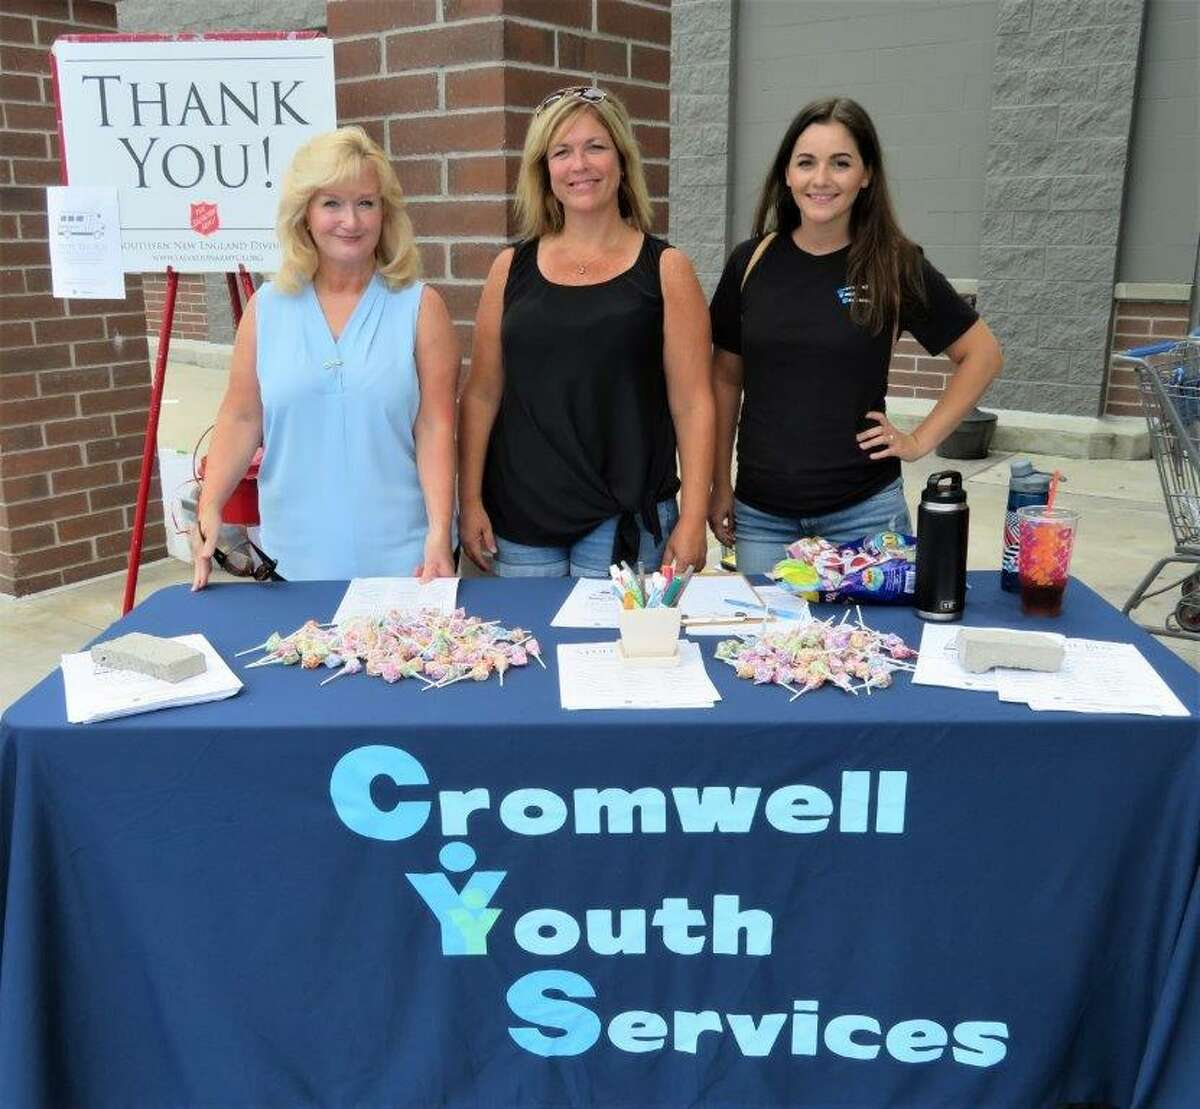 """From left, Marcia Sacco, Youth Services program assistant, Amy Saada, Human Services director, and Katelynn Kelly Puorro, youth serves director. Youth and family services officials are expressing their gratitude to the many residents who stepped forward to """"Stuff-a-Bus"""" with back-to-school items earlier this month."""